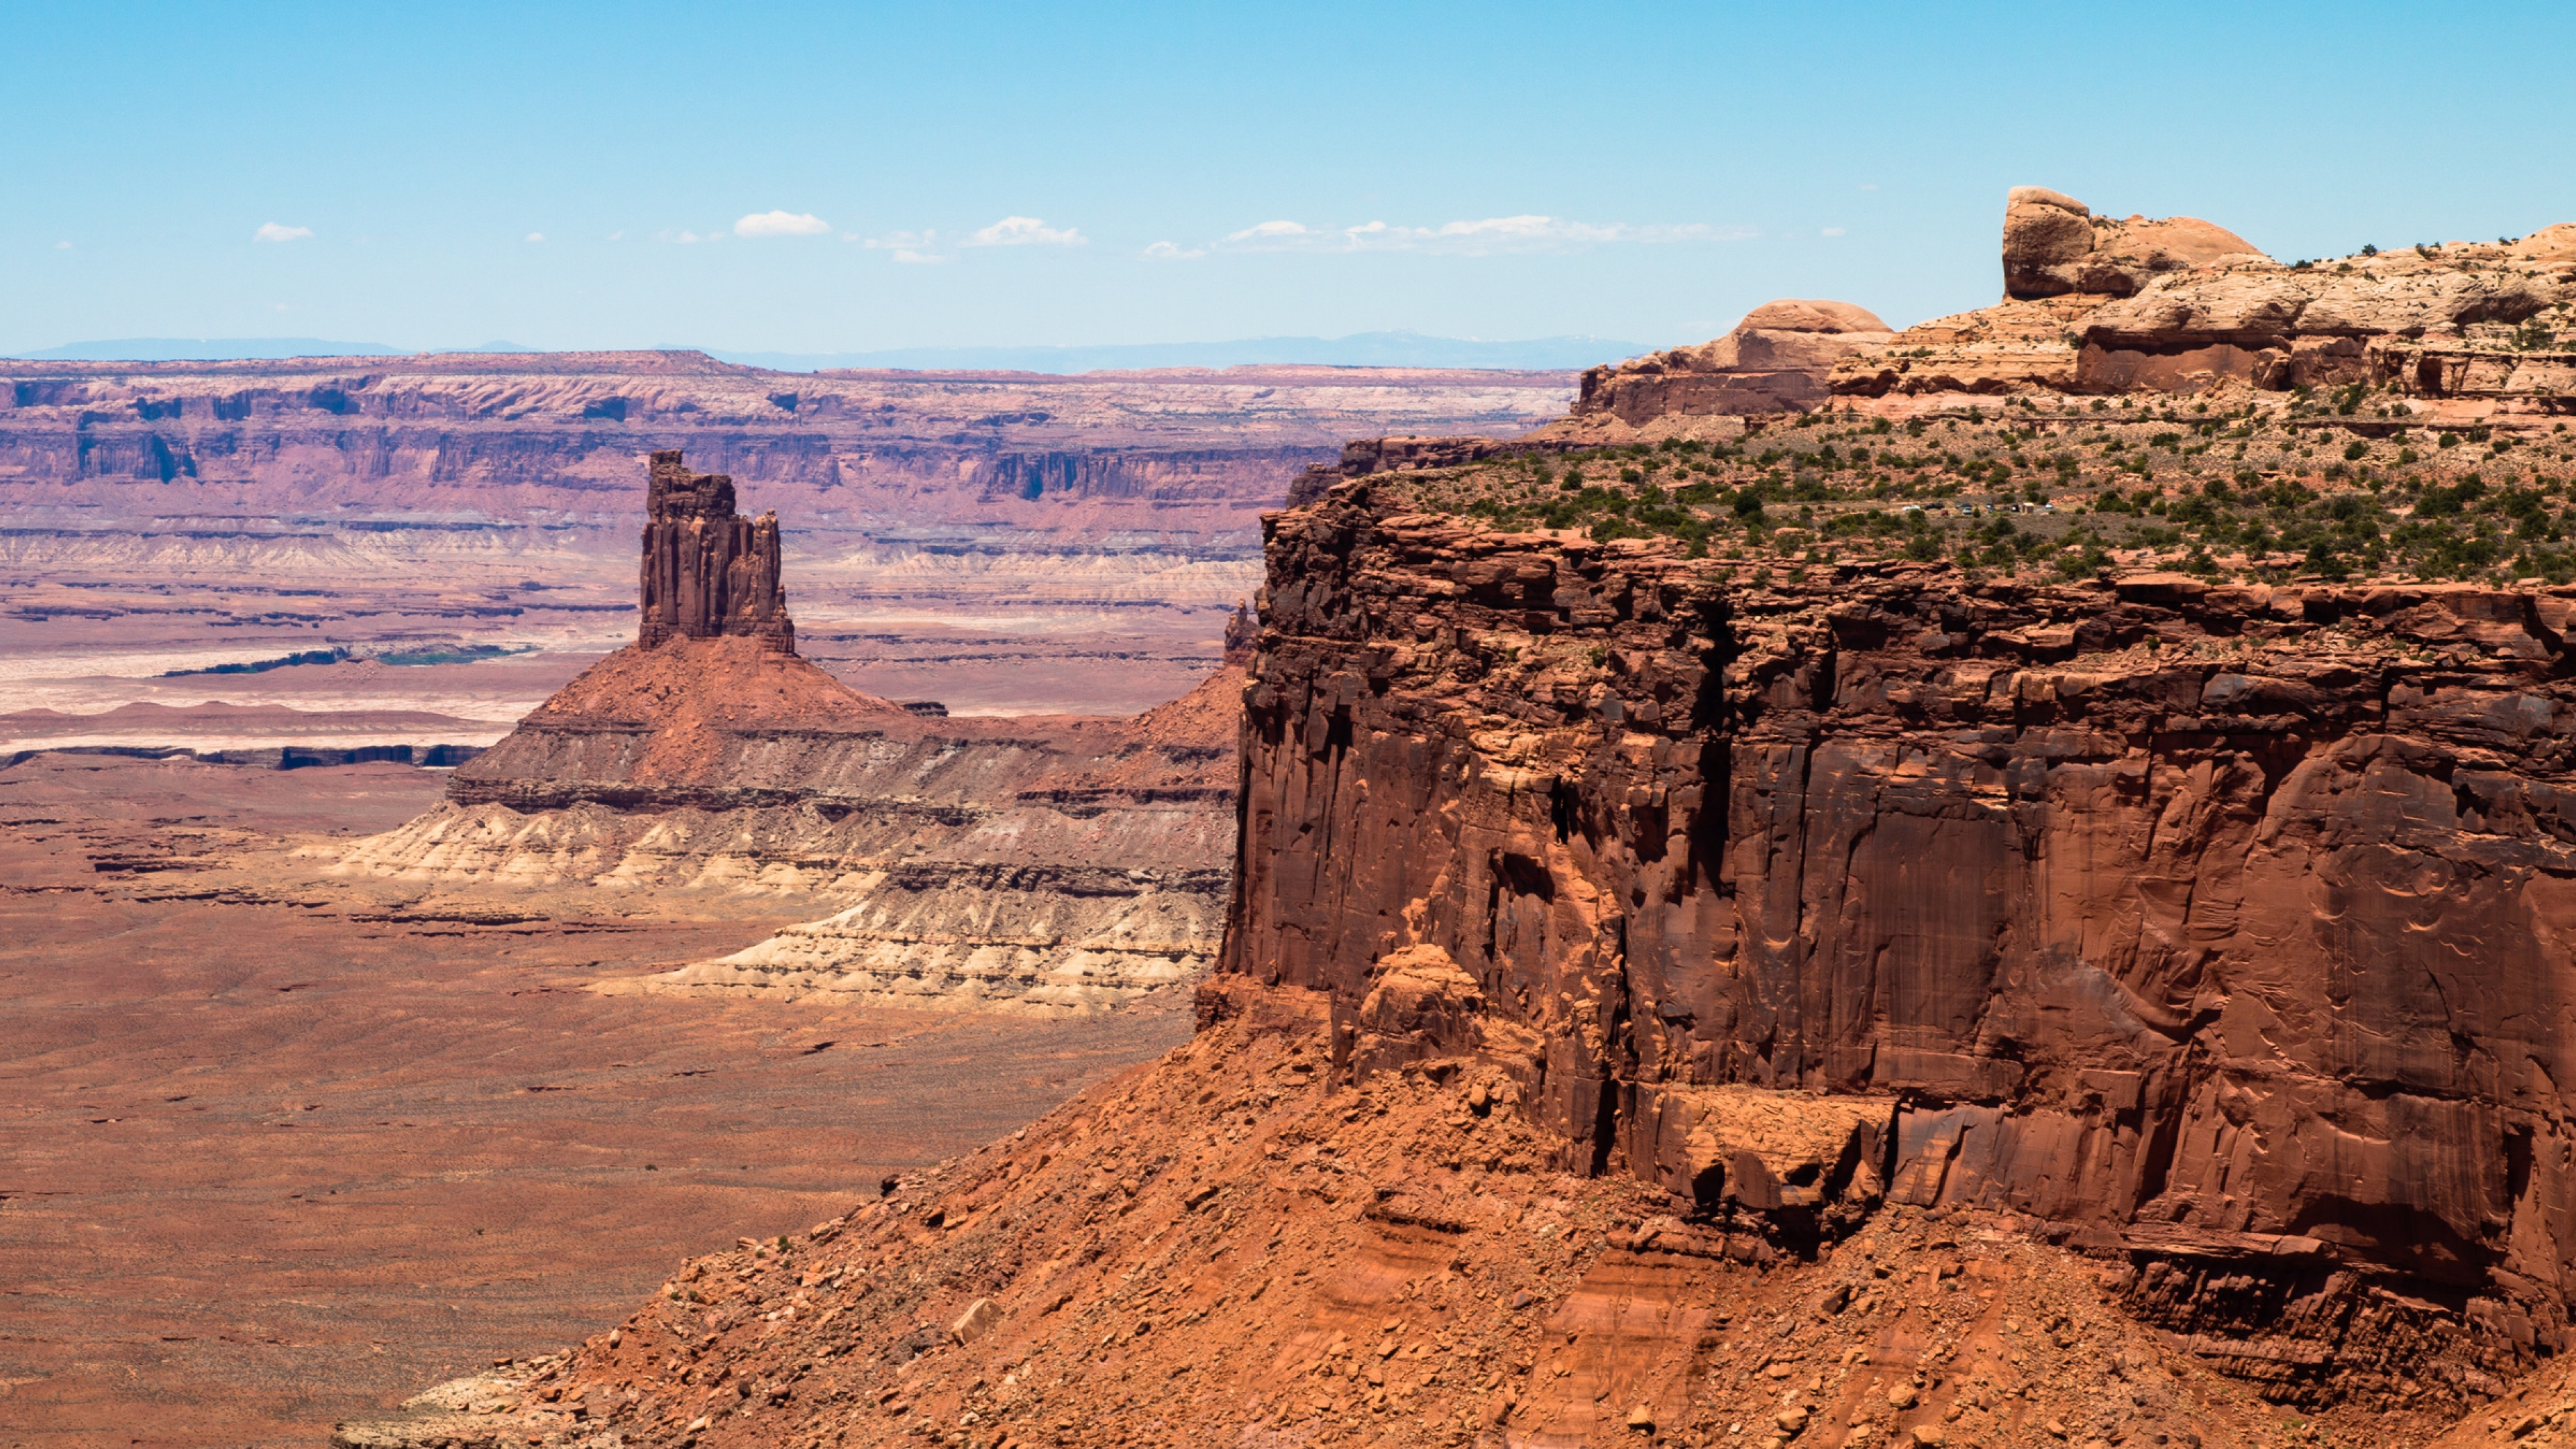 Tall cliffs and rock towers rise above the floor of the desert